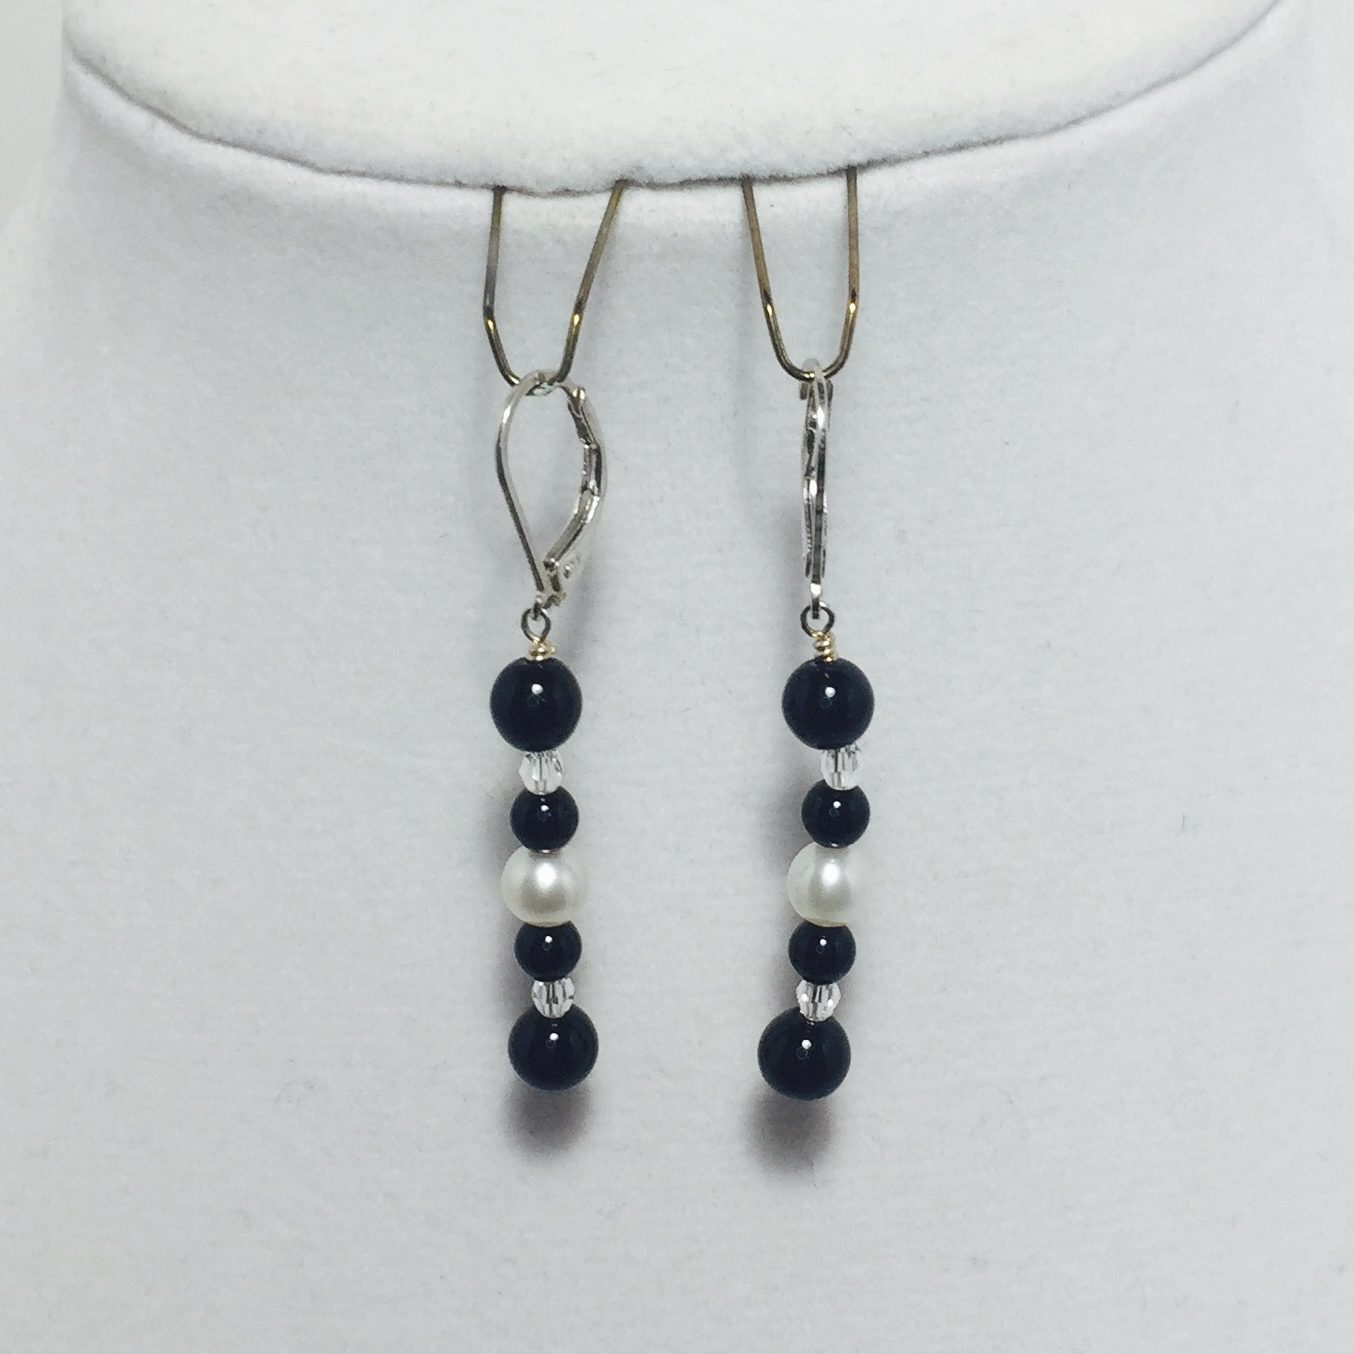 Black Jasper, Pearl, and Crystal Earrings